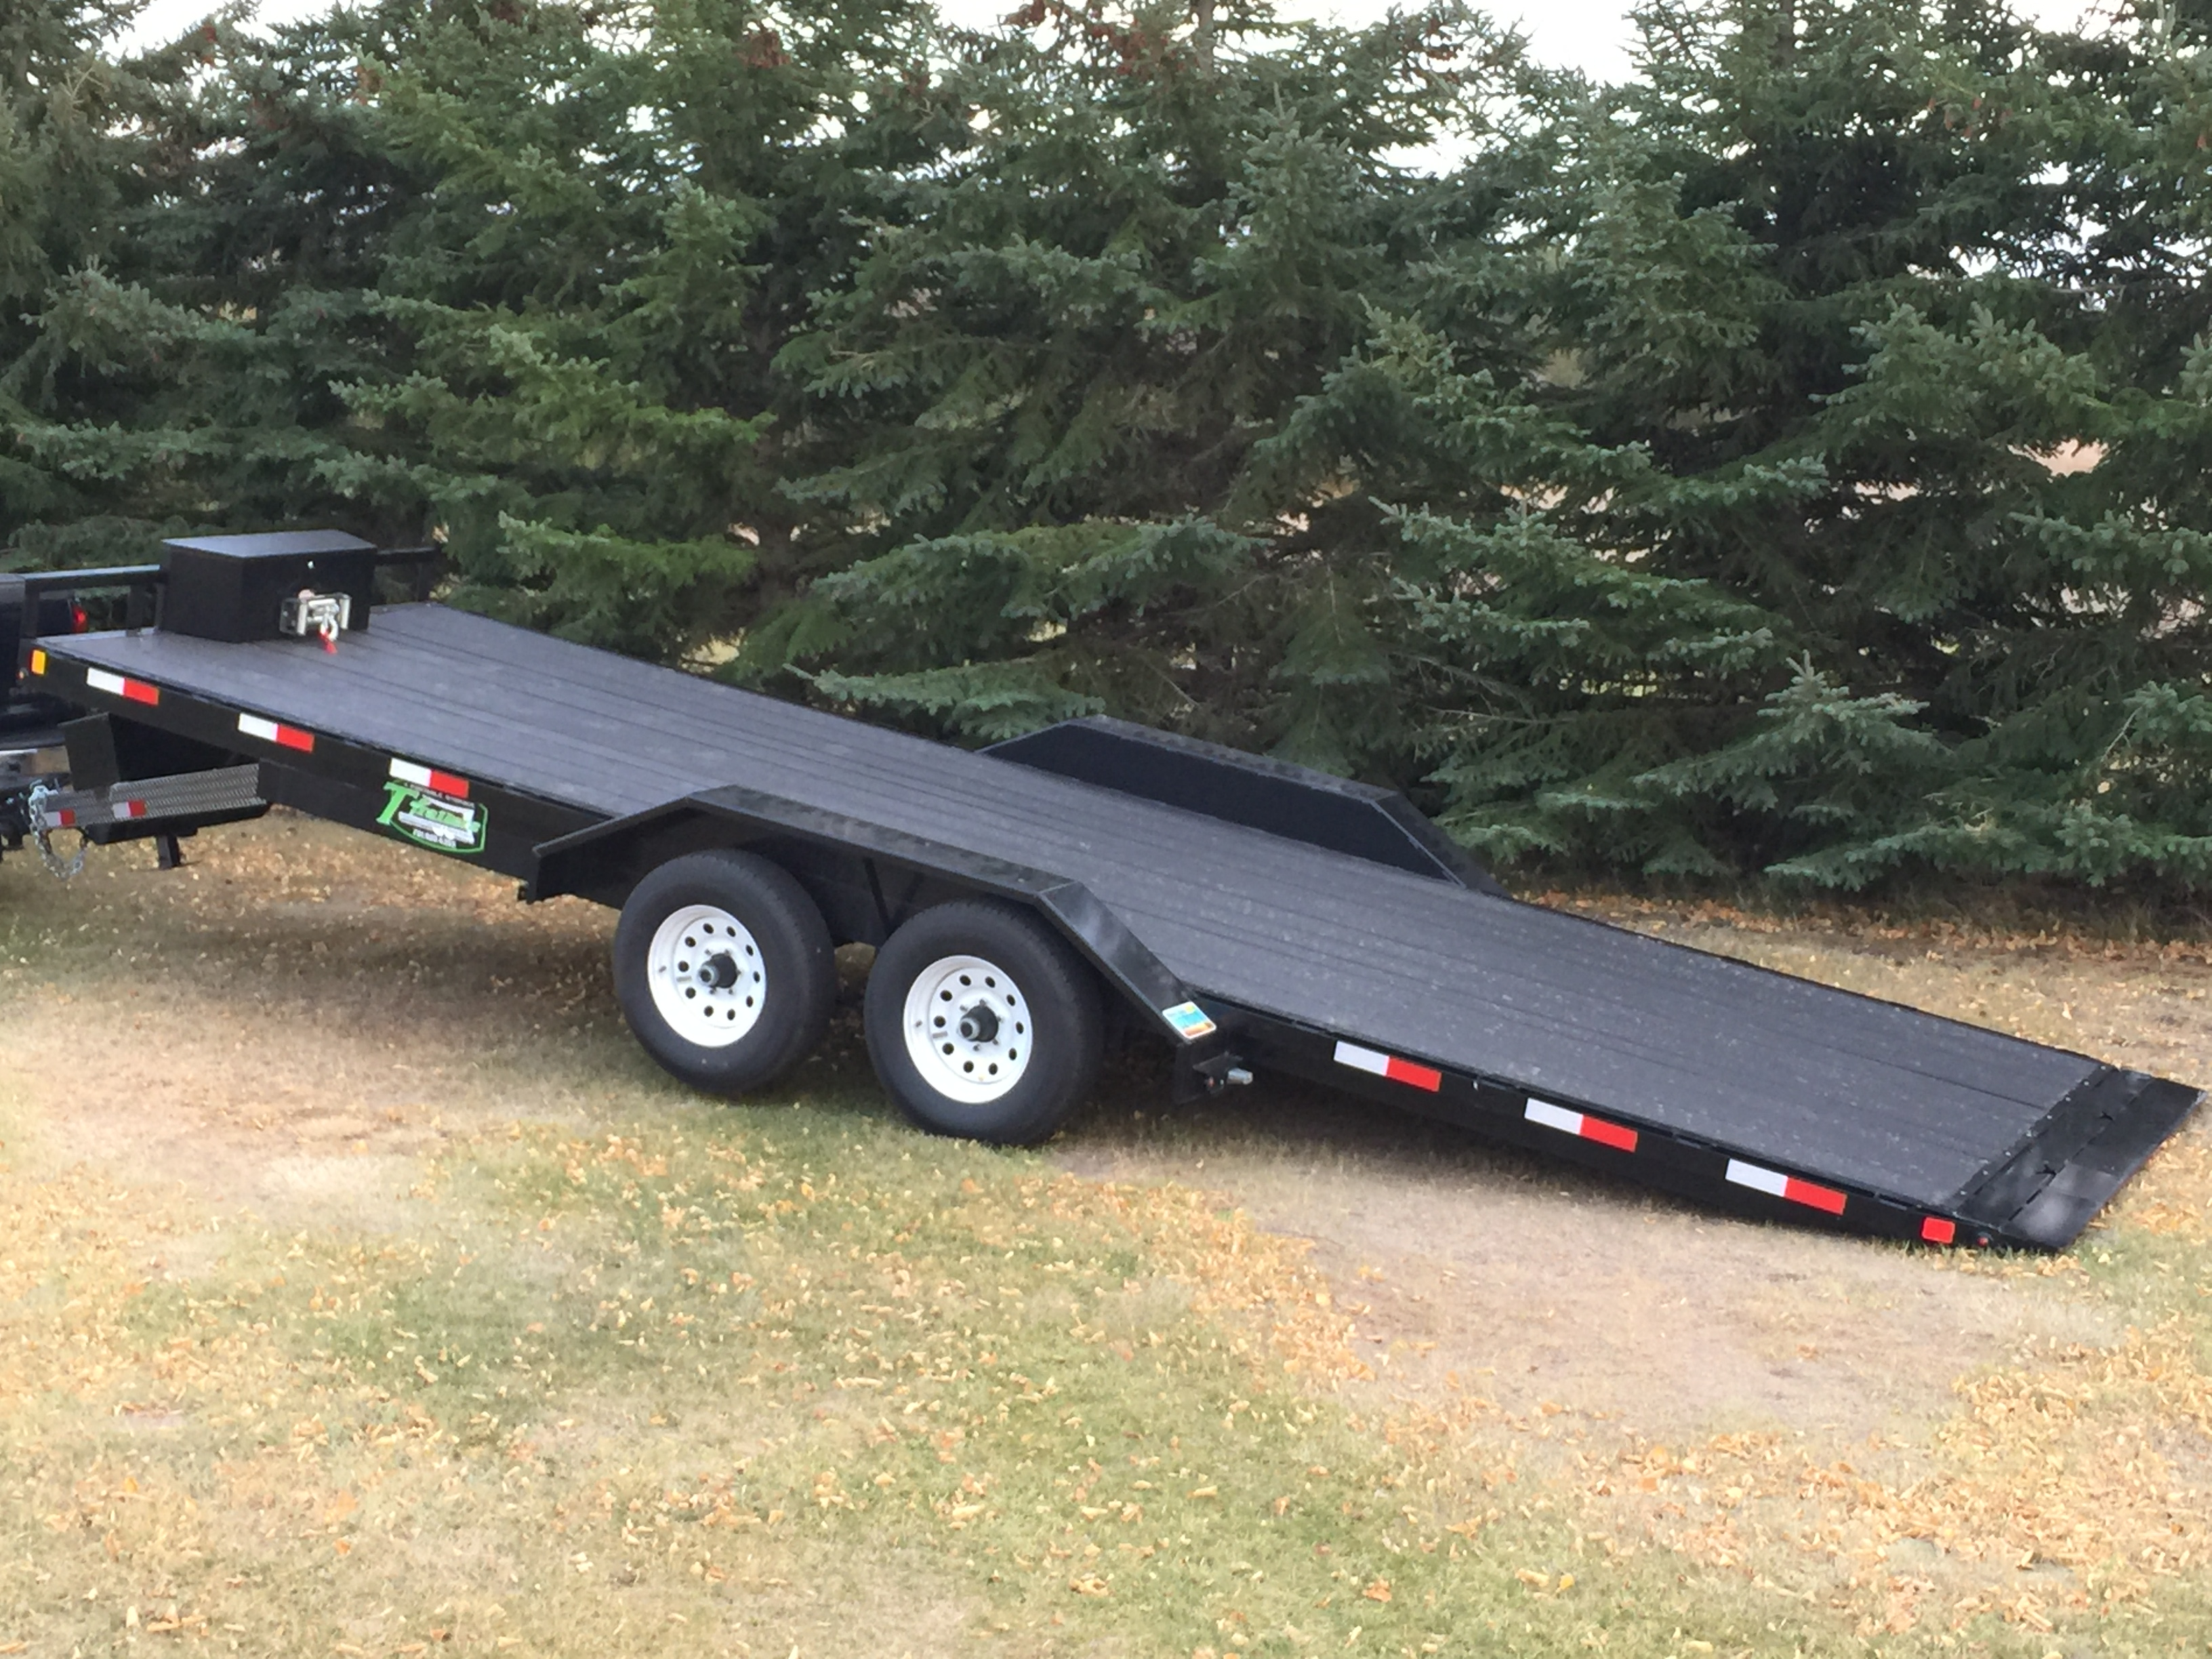 Car Trailer Winch >> Rental 22 6 Flatbed Car Trailer Power Tilt With Winch Drive Over Fenders